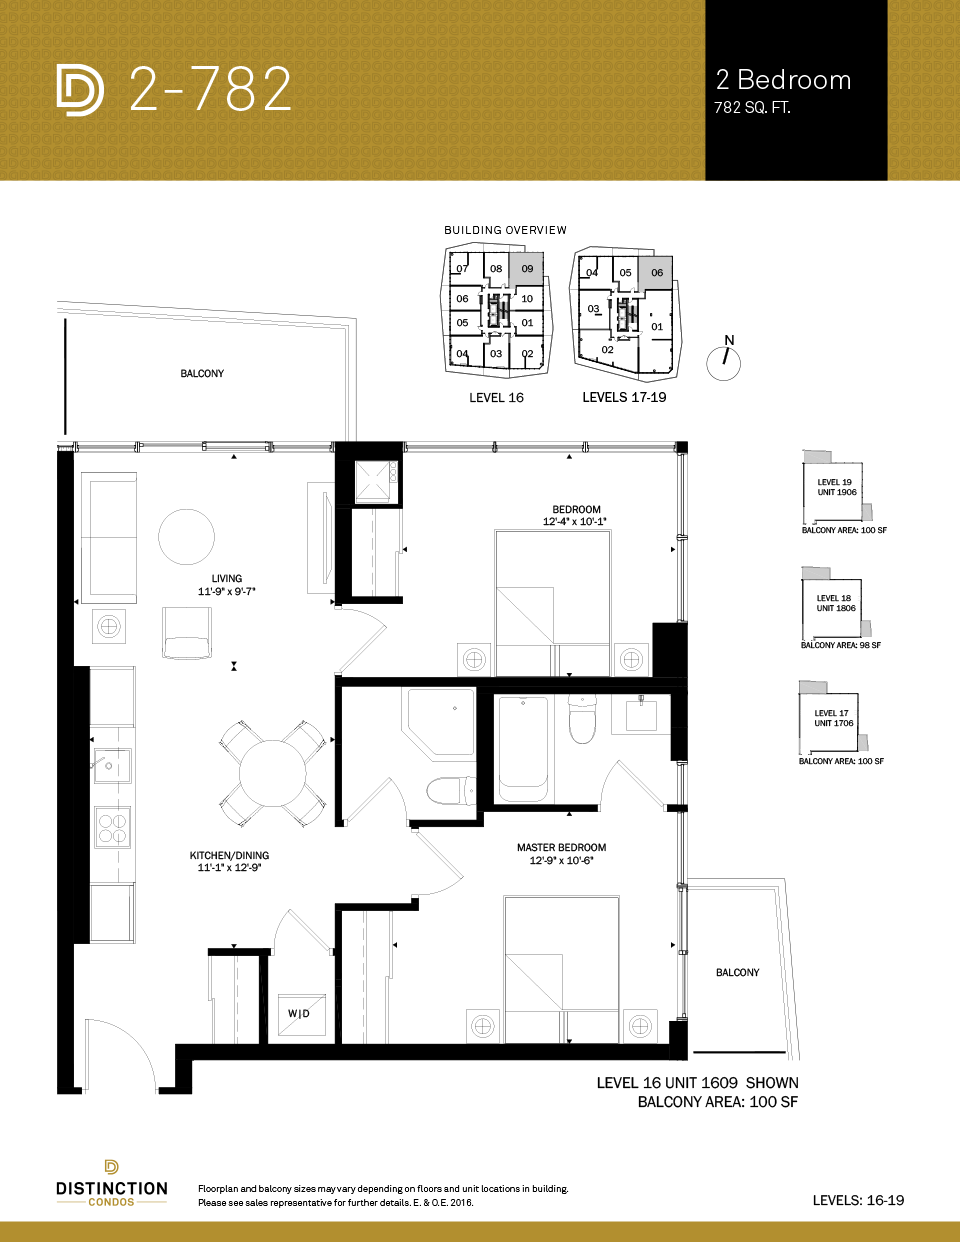 distinction condos floorplan 2-782